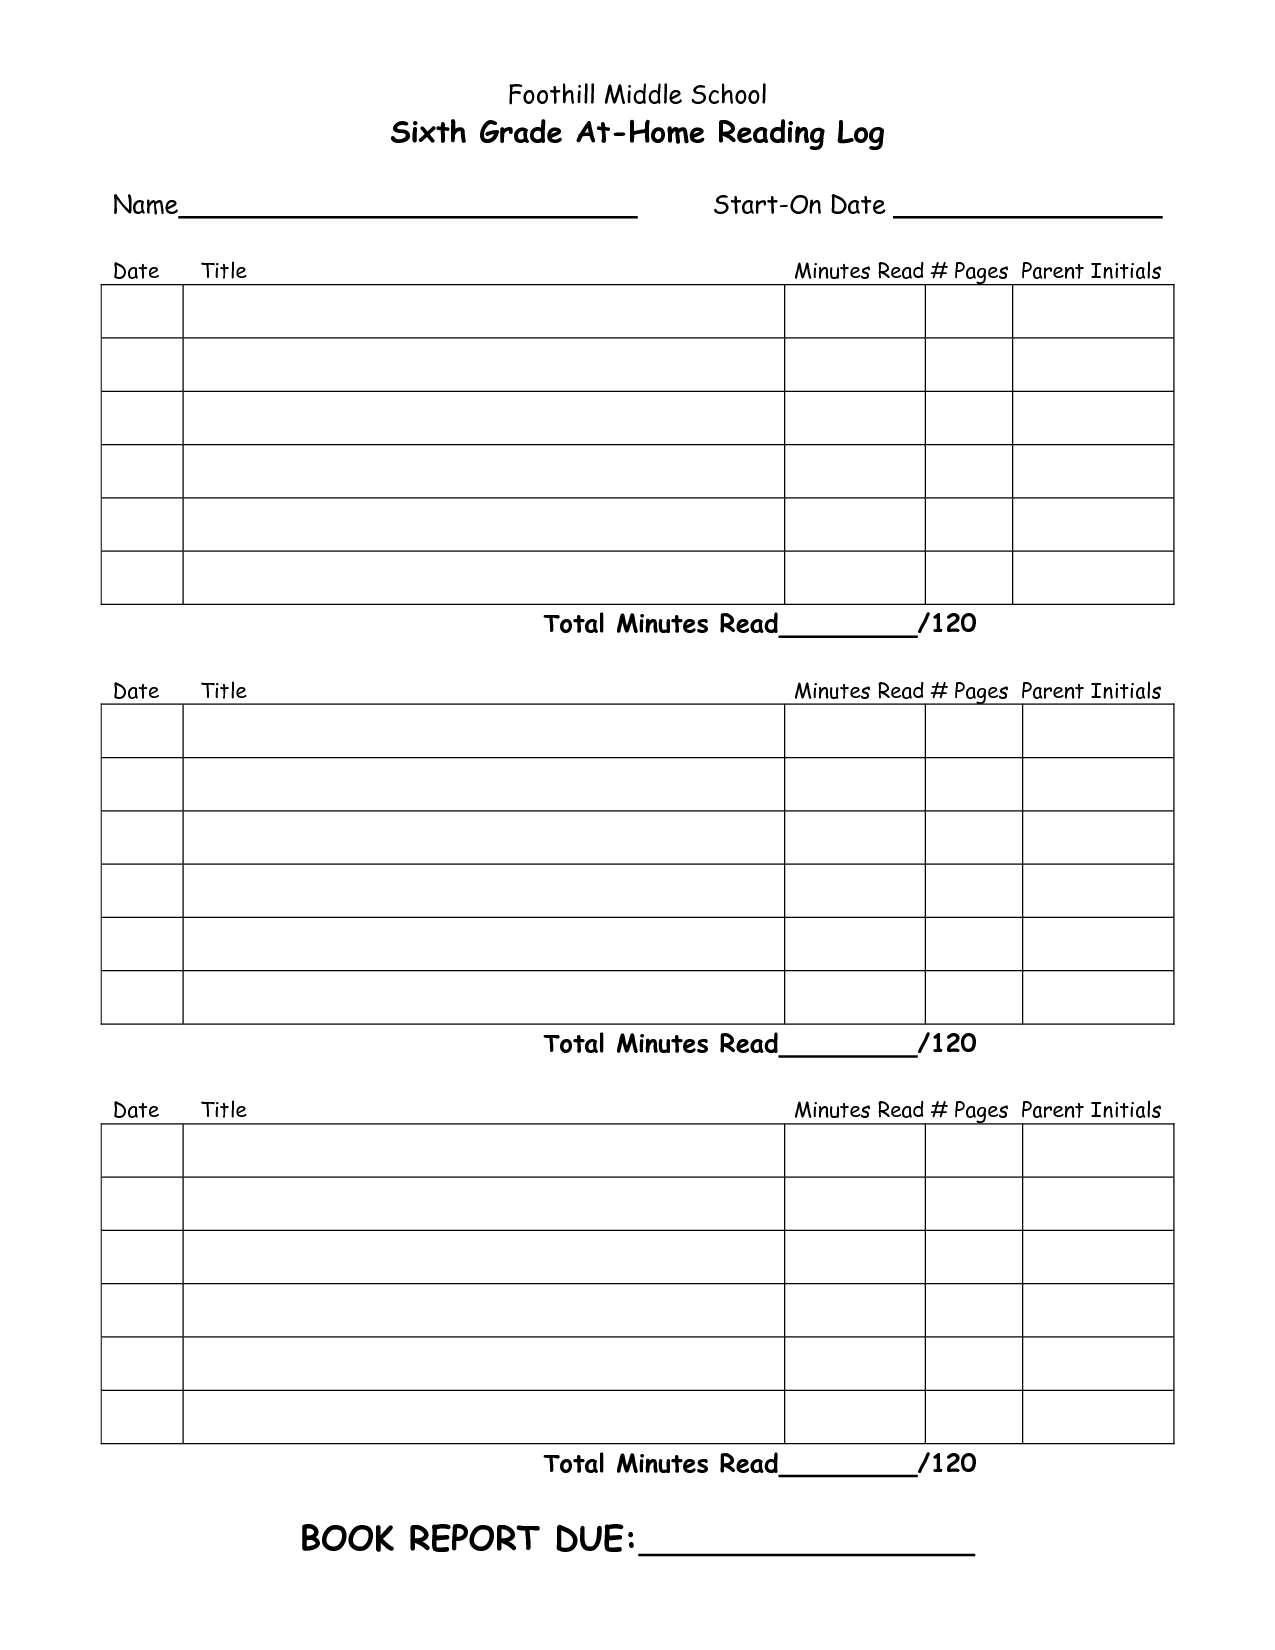 Reading Log For Middle School